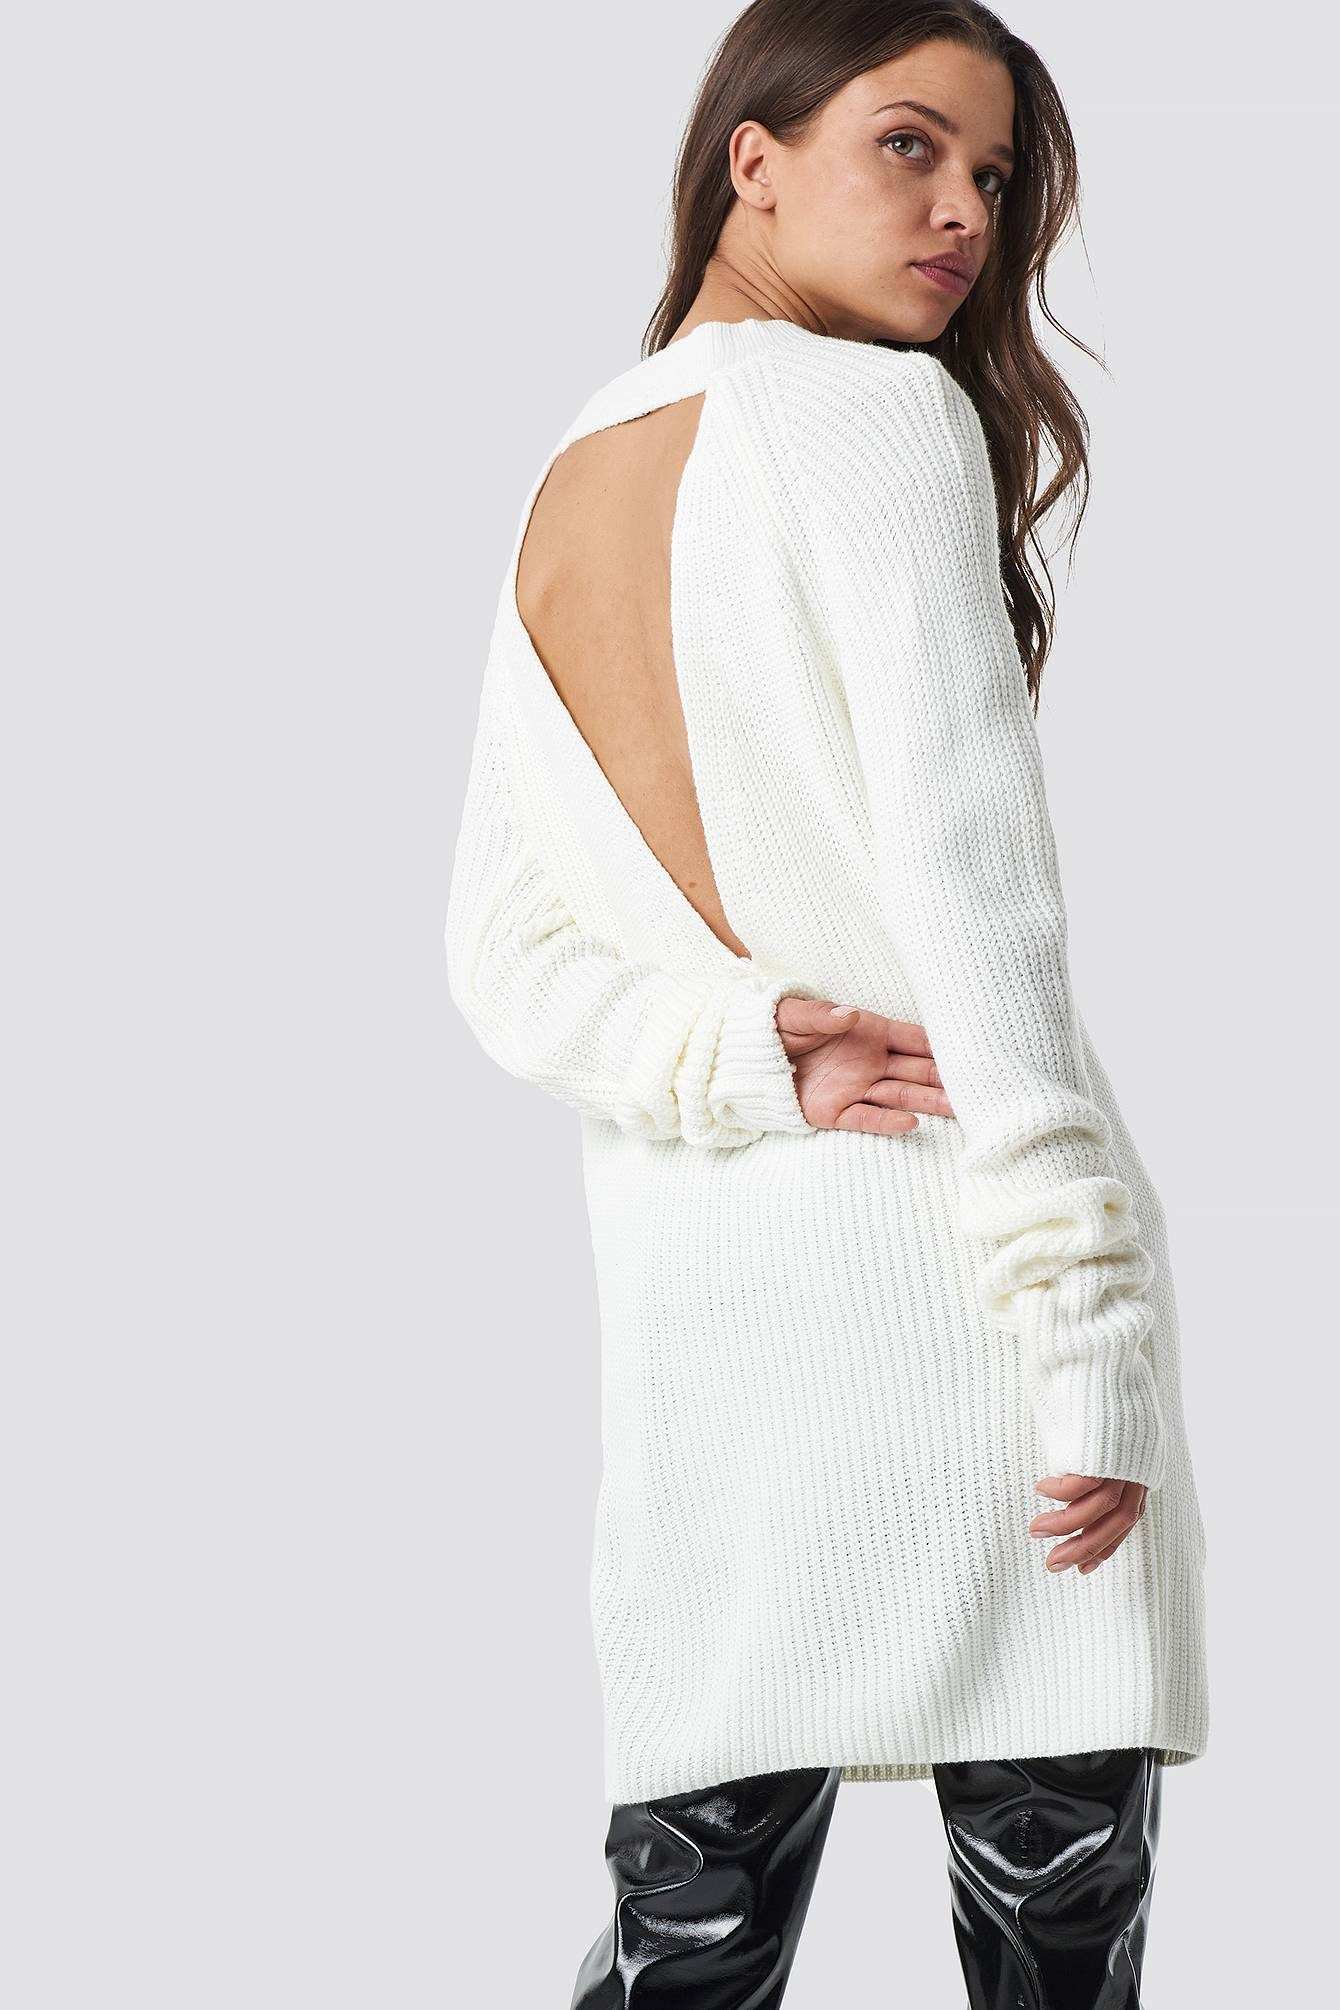 Trendyol Open Back Knitted Sweater - White